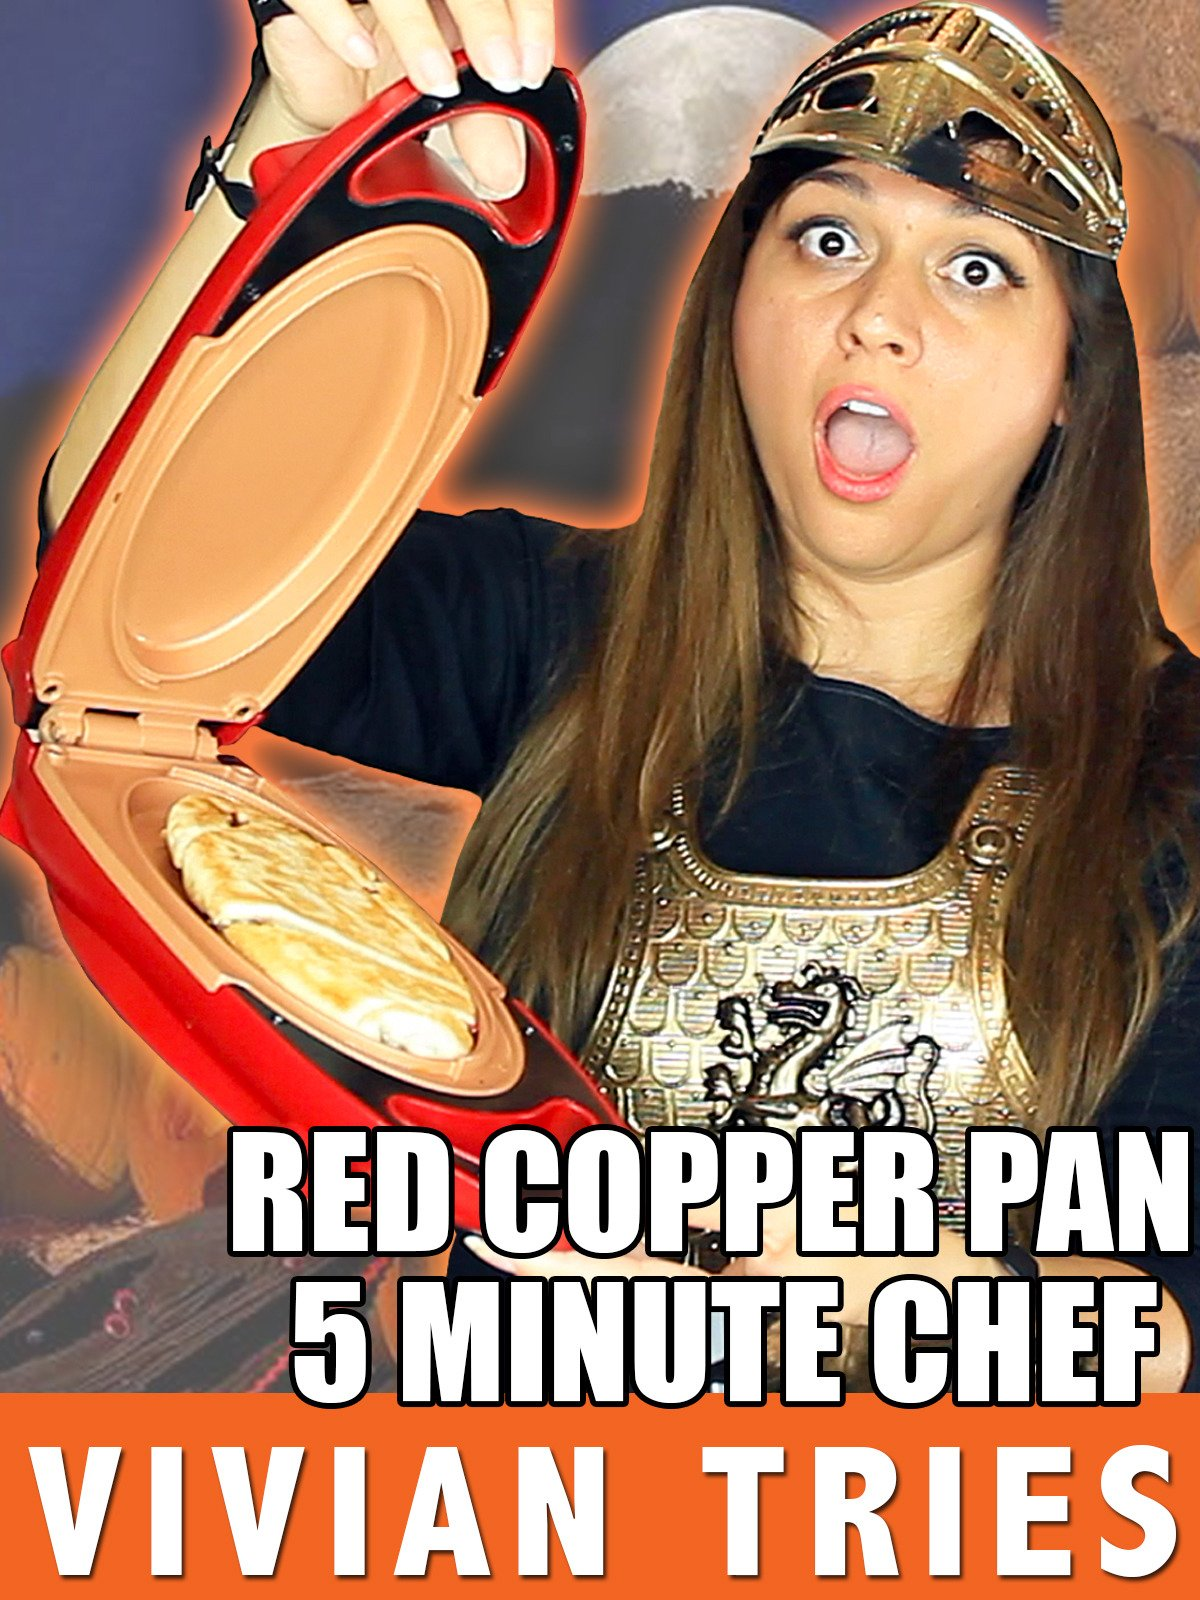 Review: Red Copper Pan 5 Minute Chef